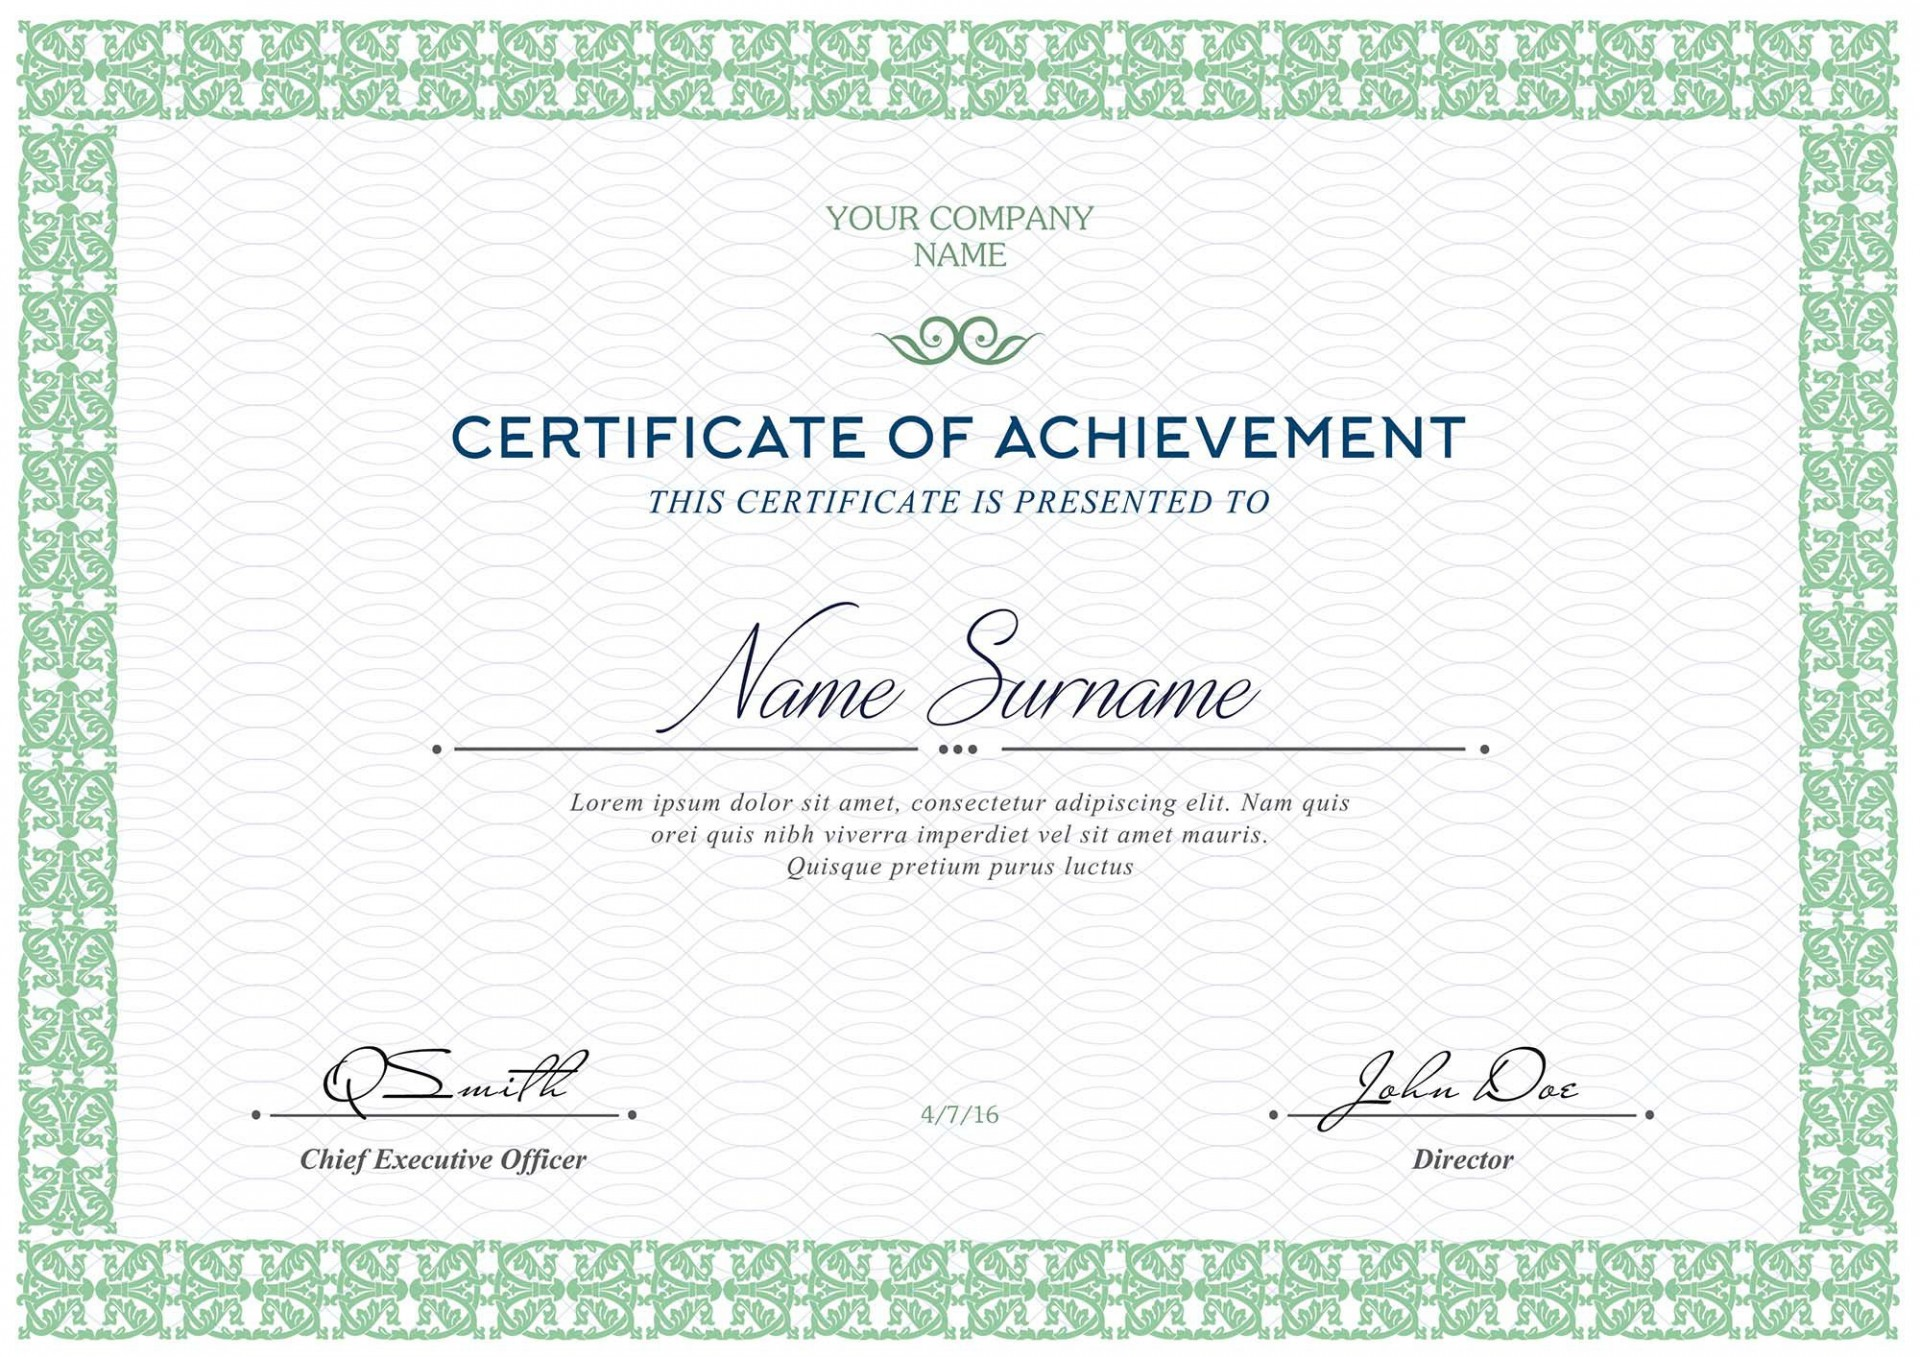 005 Awful Free Template For Certificate Design  Certificates Online Of Completion Attendance Printable Participation1920